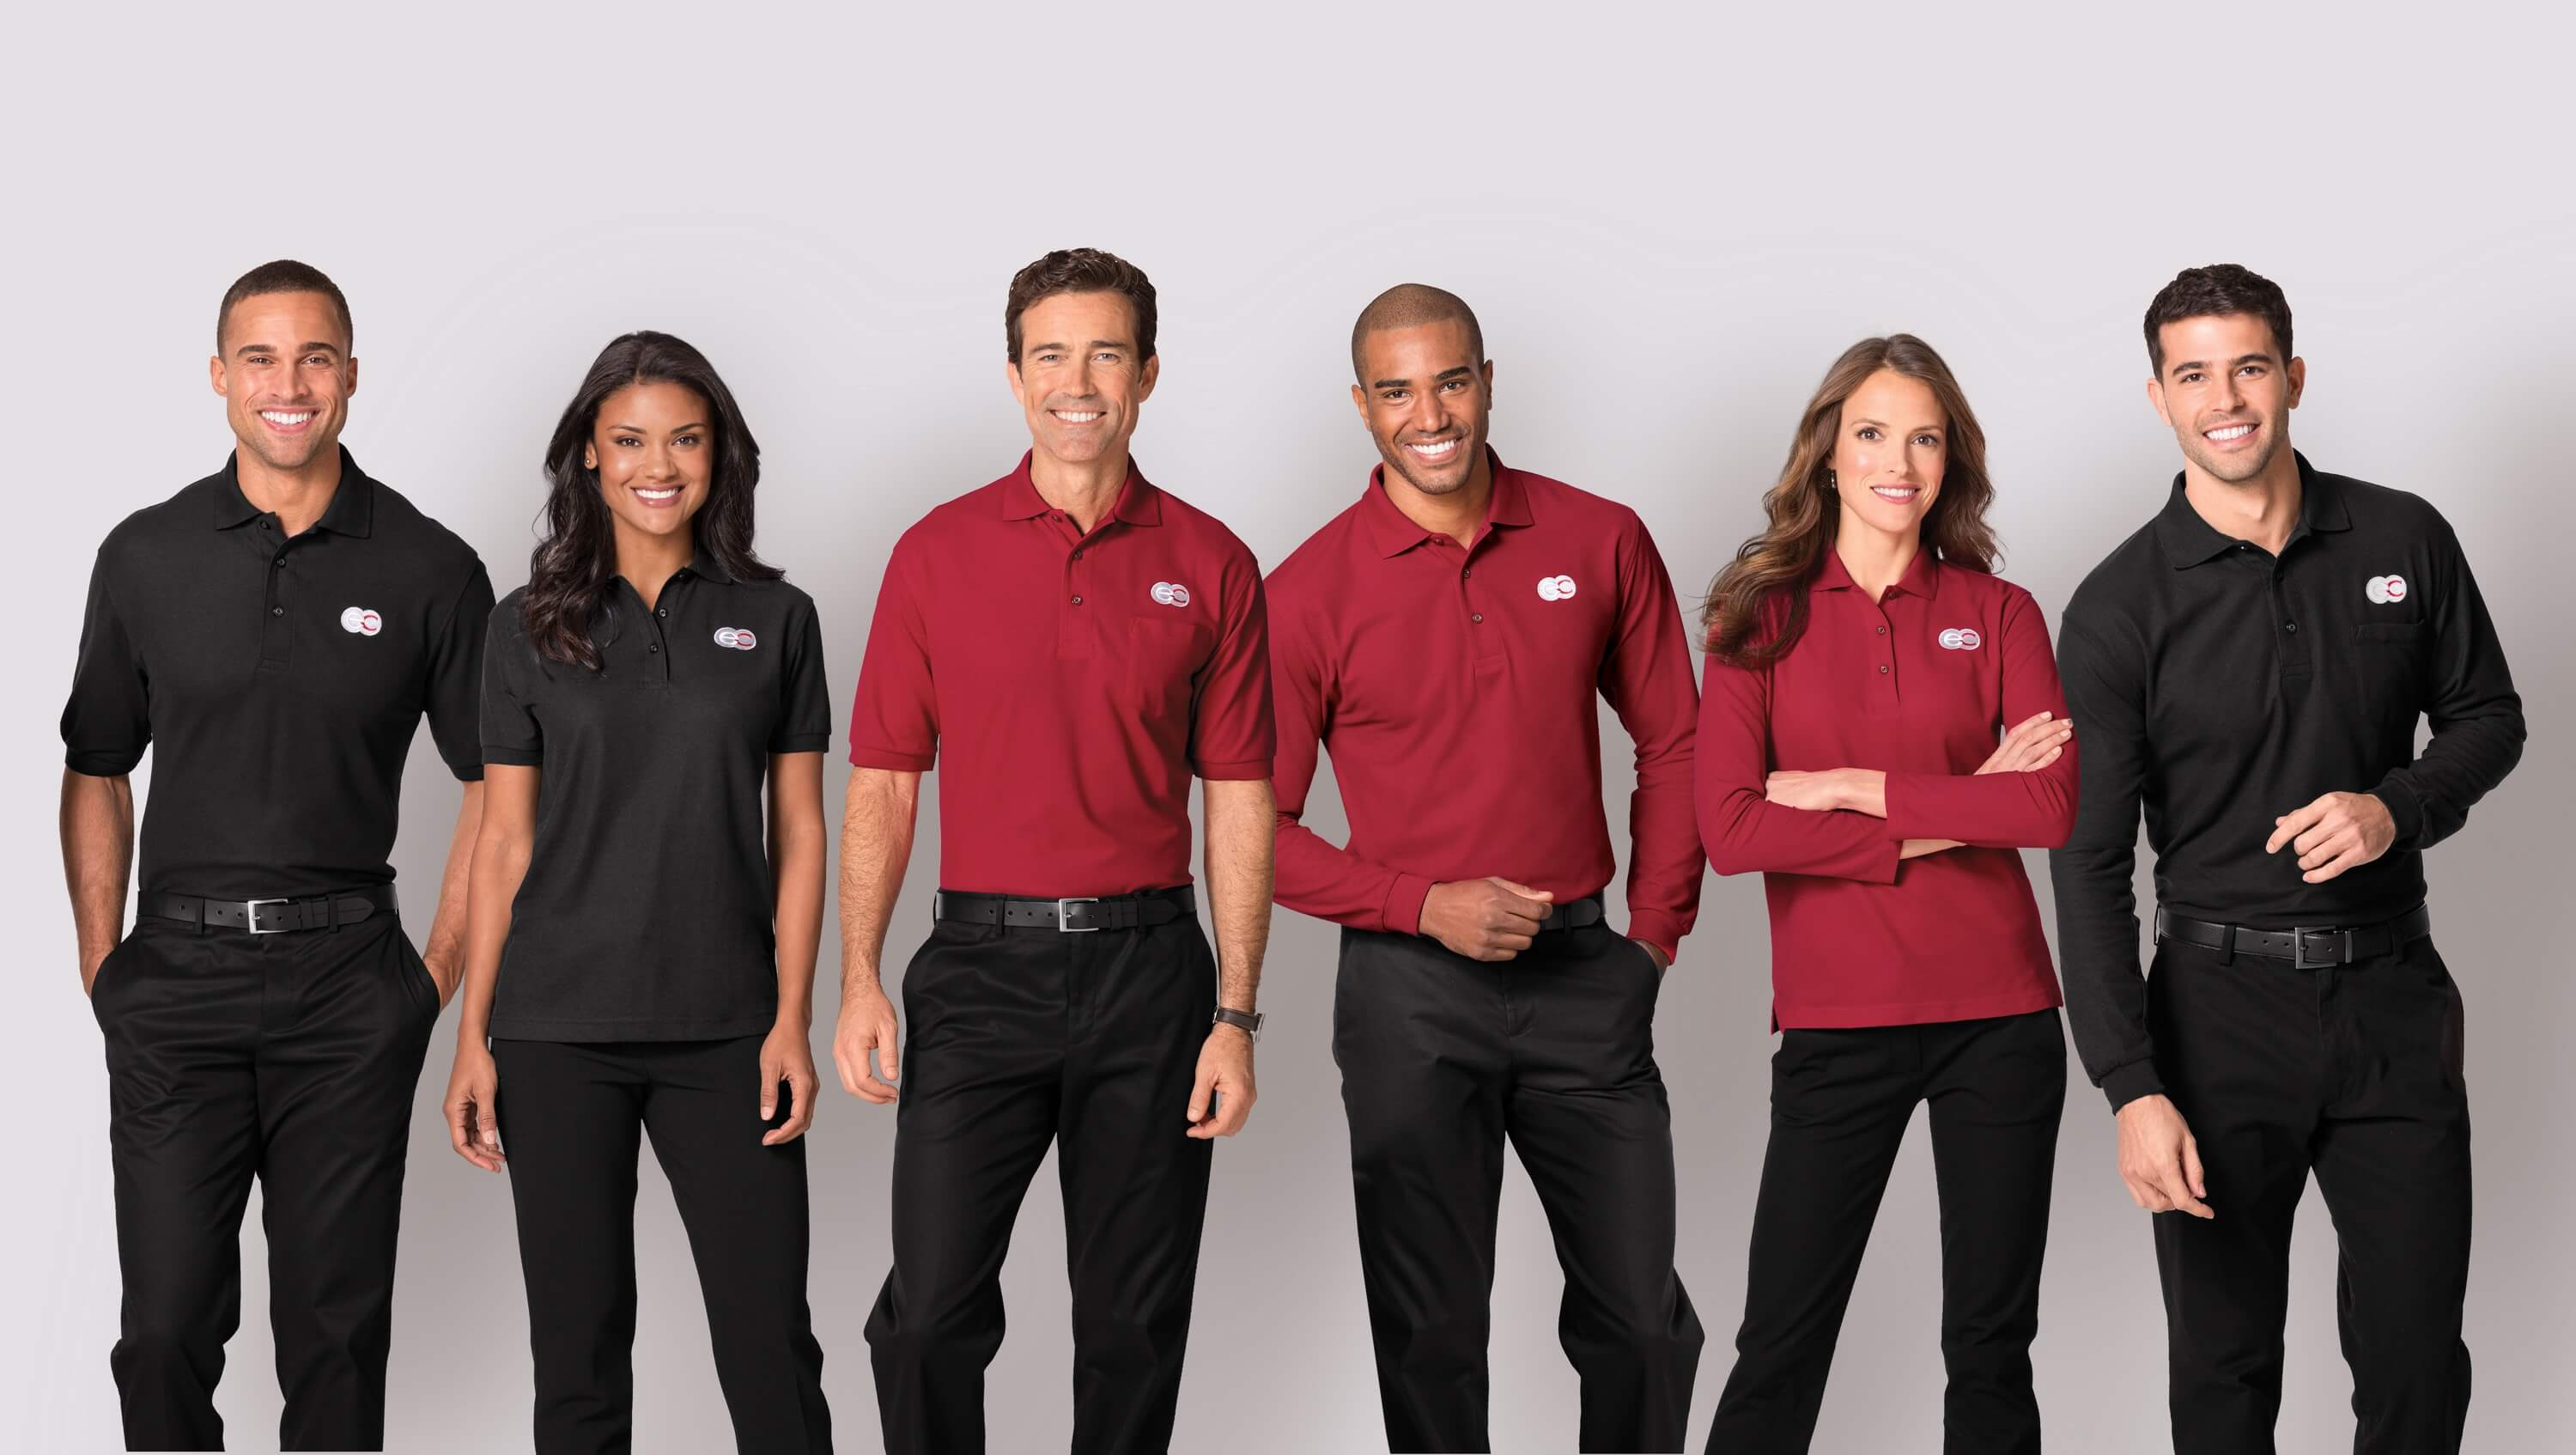 How Is Uniform Important To Your Company/Business?